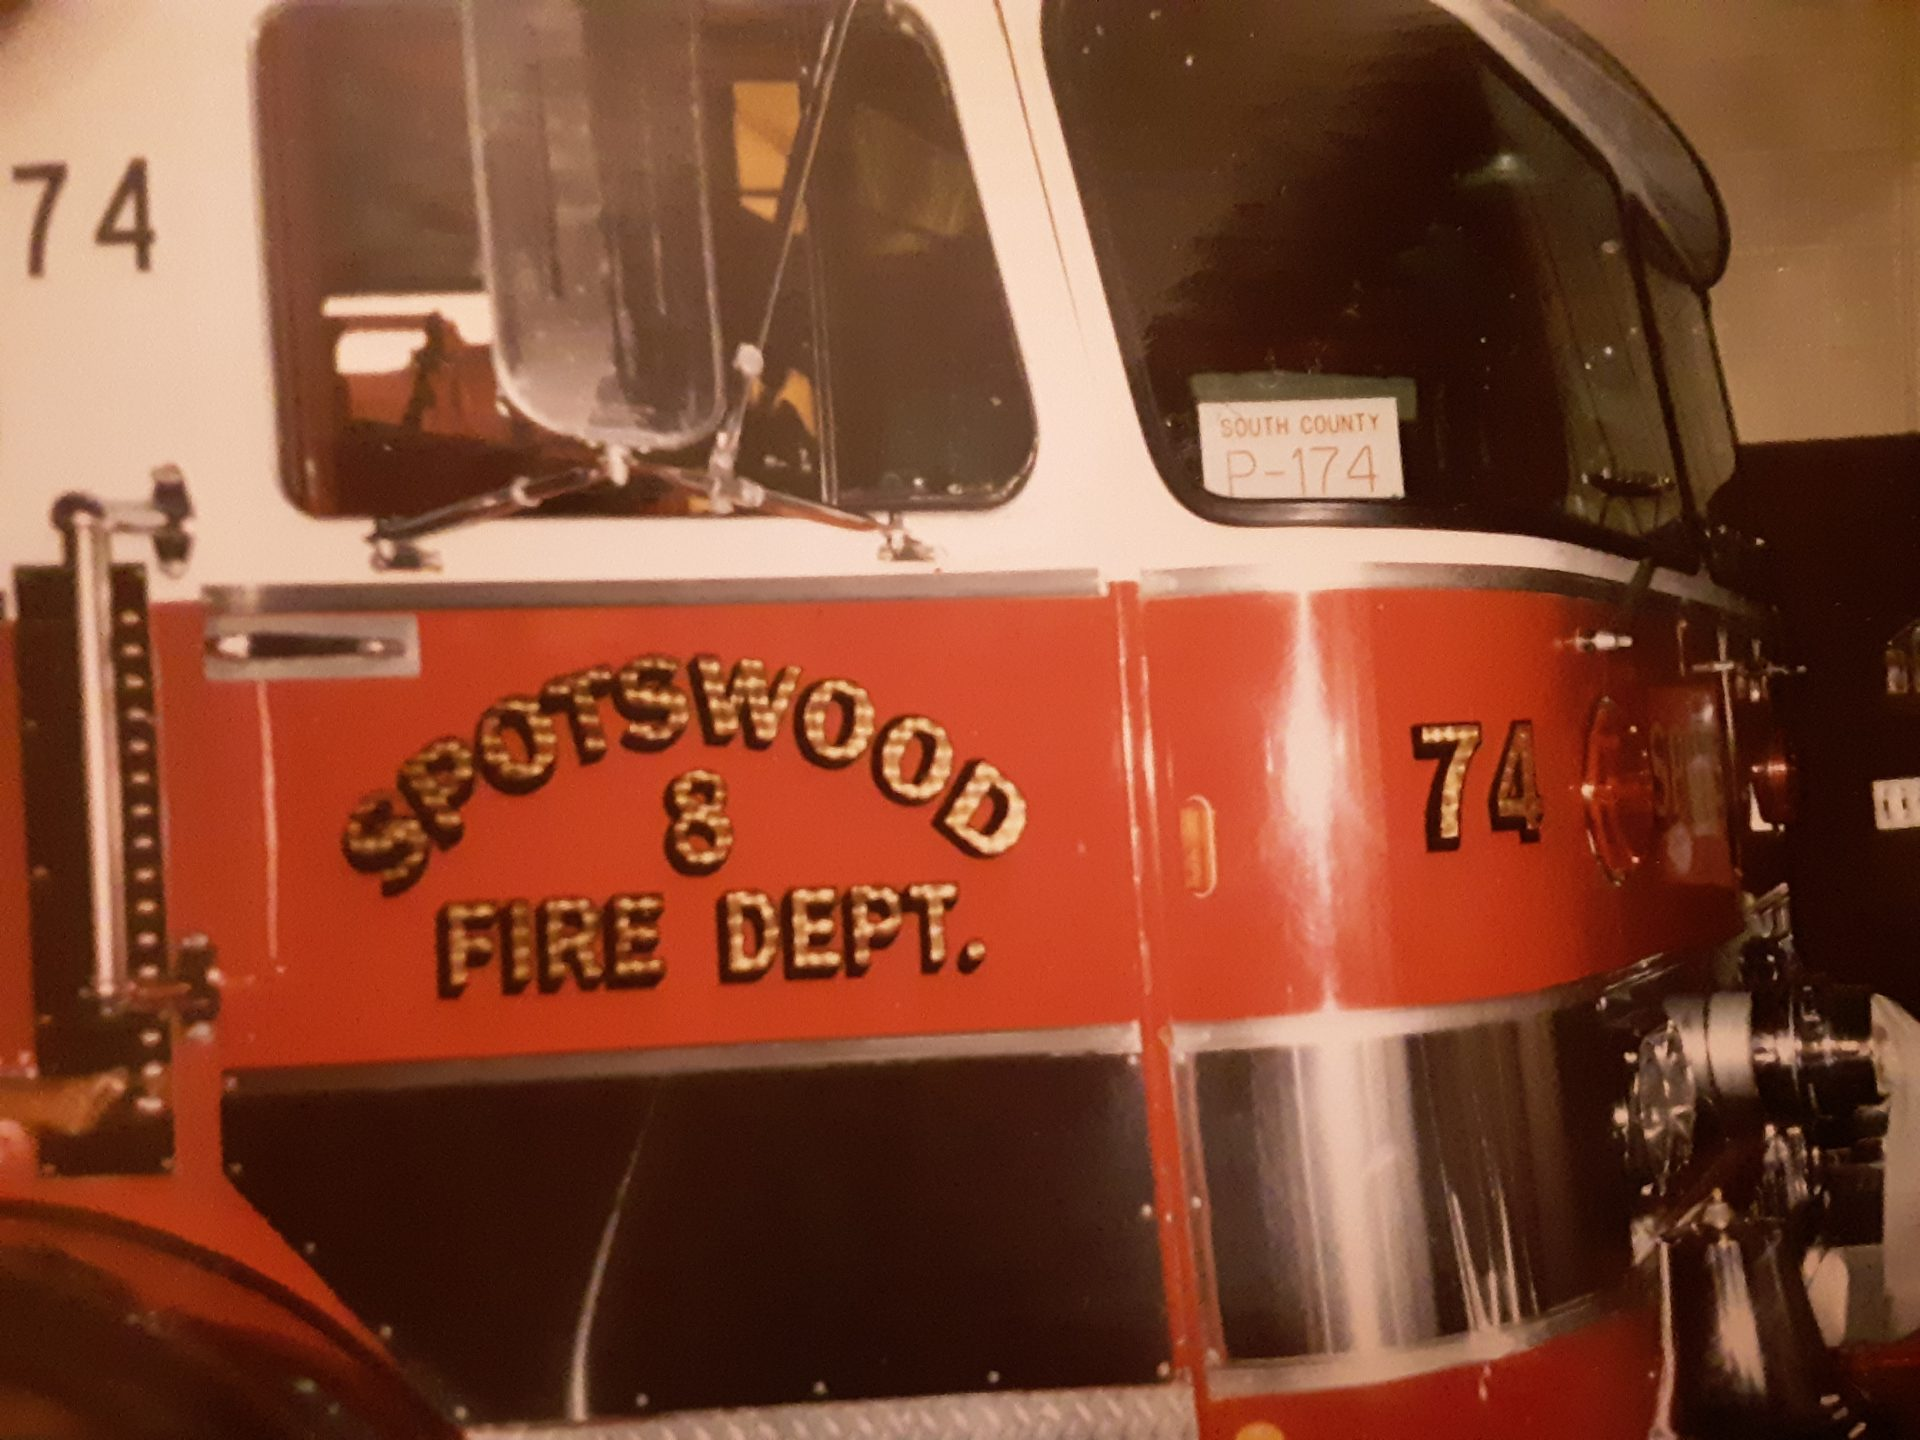 Old engine  74! Dad and  uncle  Ray  designed  and  dedicated this  truck  with  help  of a few other  great  firemen!